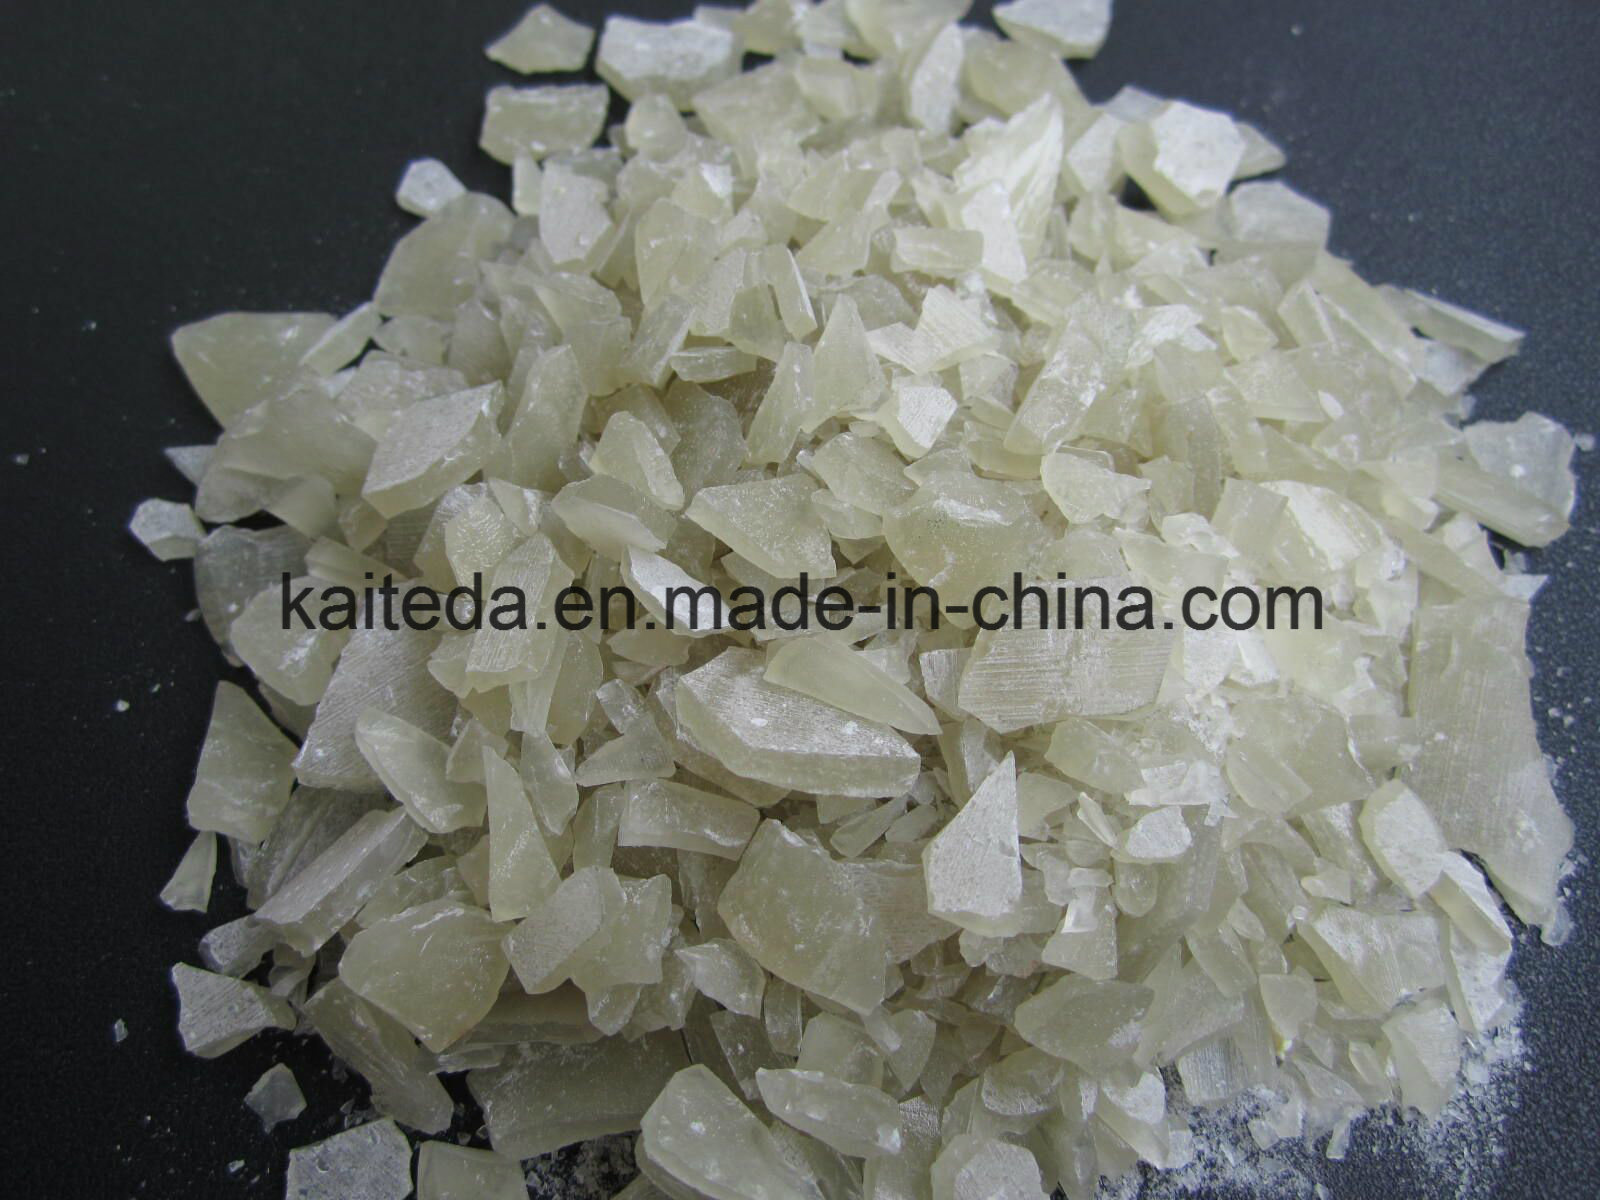 White Flake/Granular/Ball or Powder, Aluminum Sulphate/Aluminum Sulfate for Water Treatment Chemicals Flocculating Agent